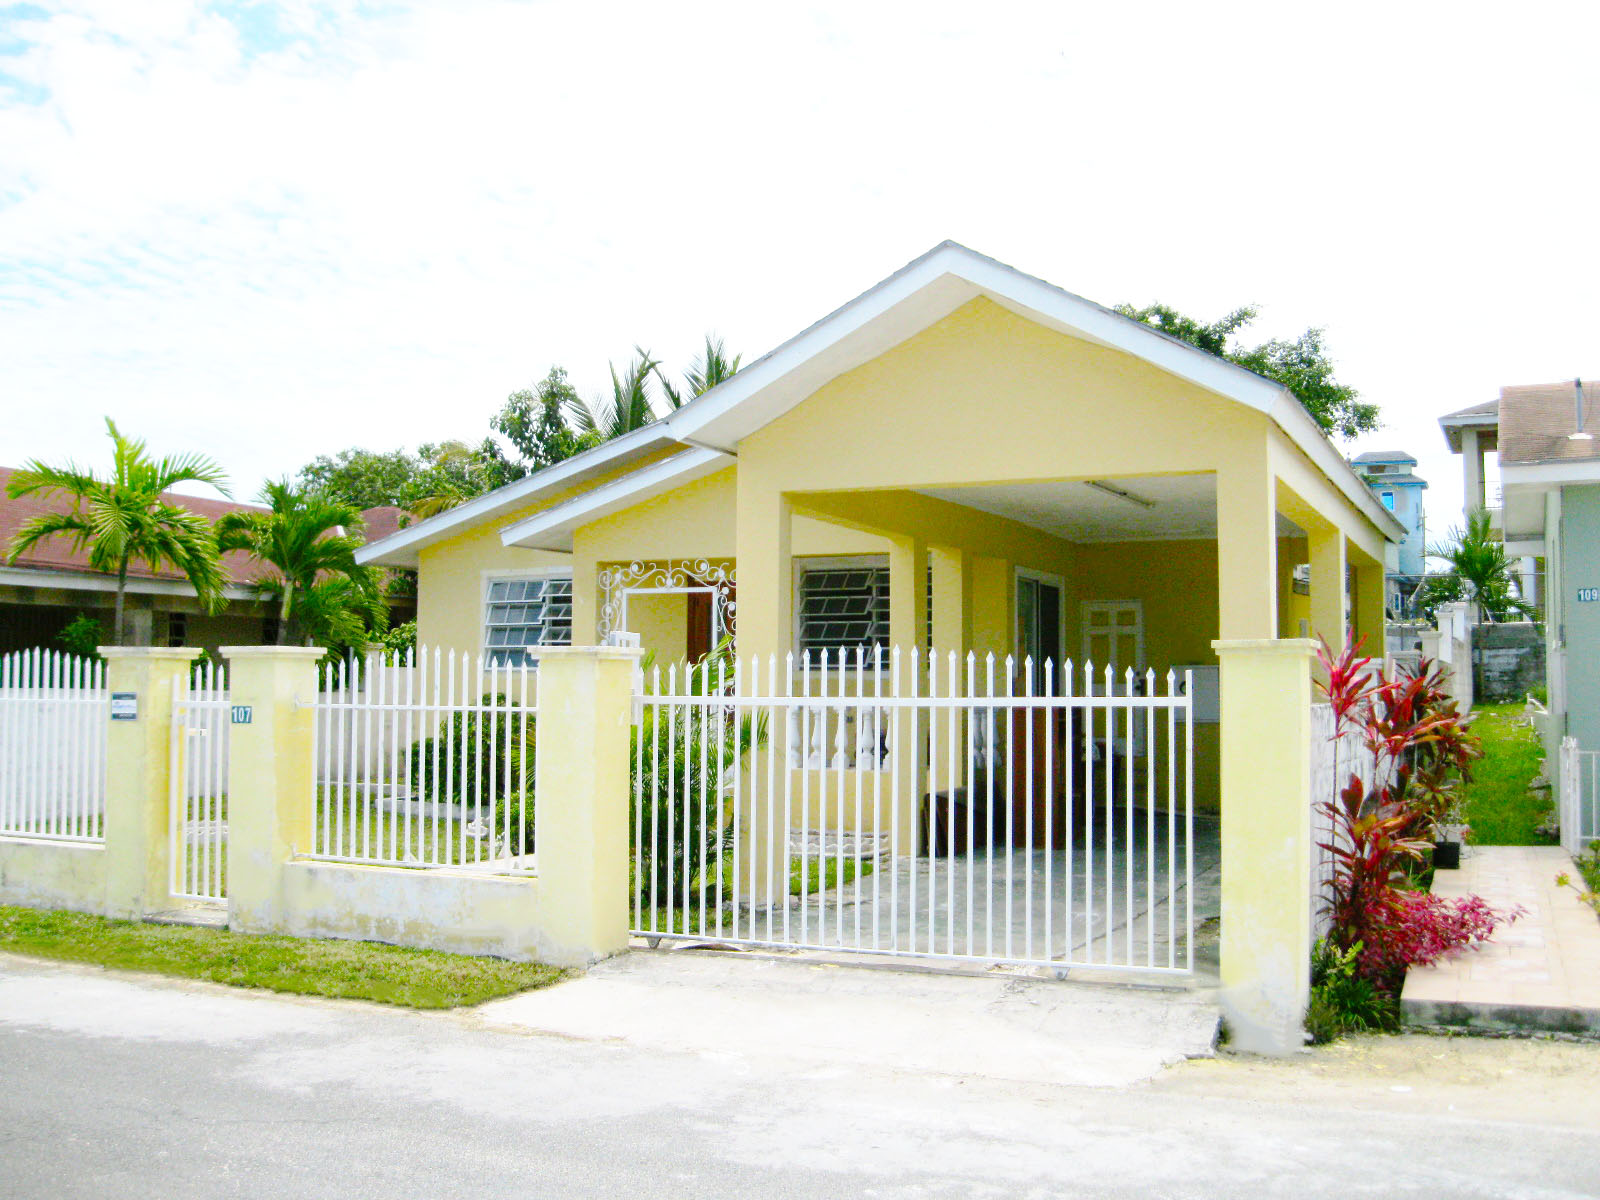 Single Family Home for Sale at Well Maintained Starter Home Pinewood Gardens, Nassau And Paradise Island, Bahamas